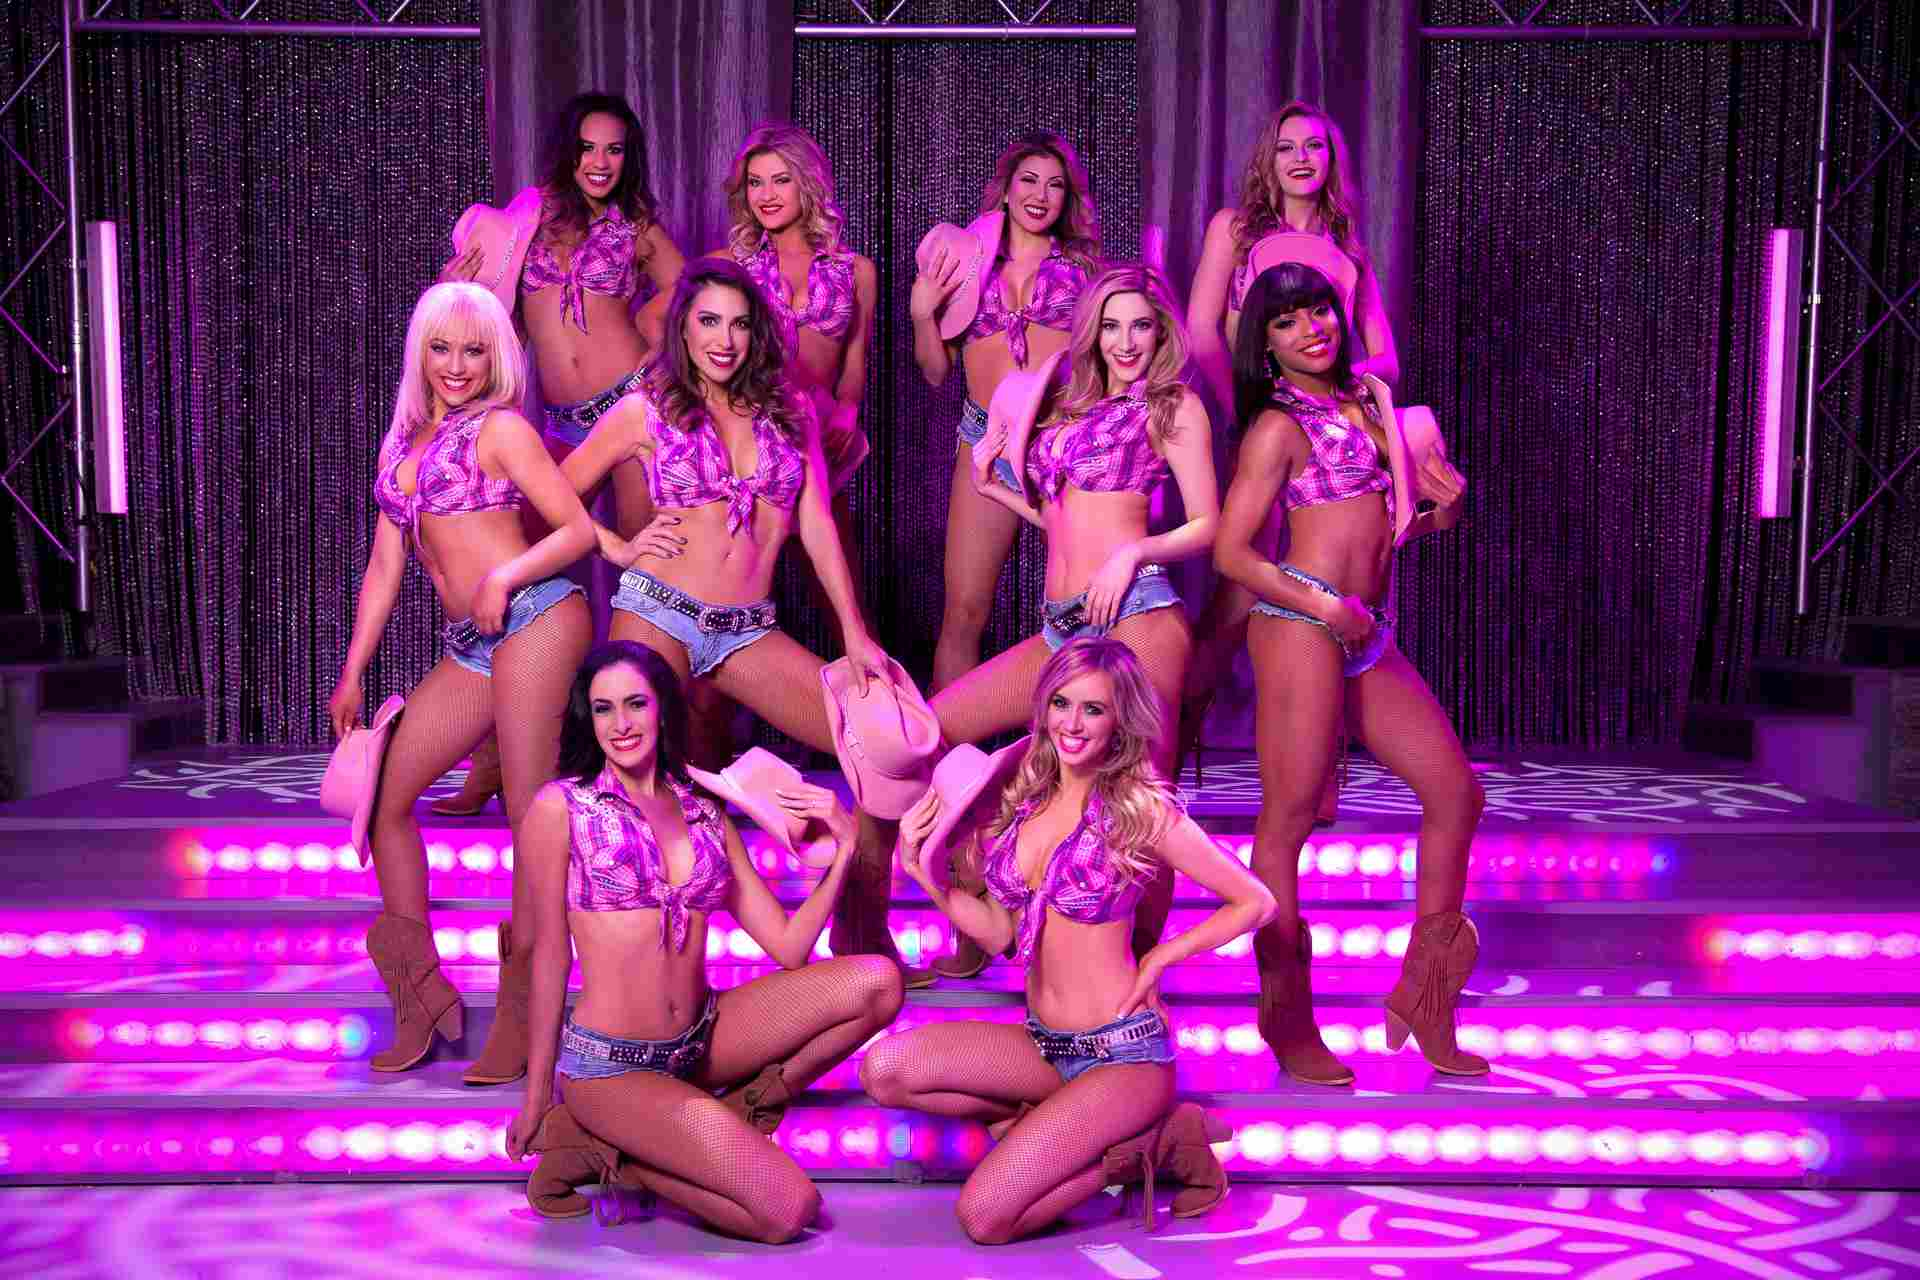 Fantasy Burlesque Show Las Vegas Discount Tickets